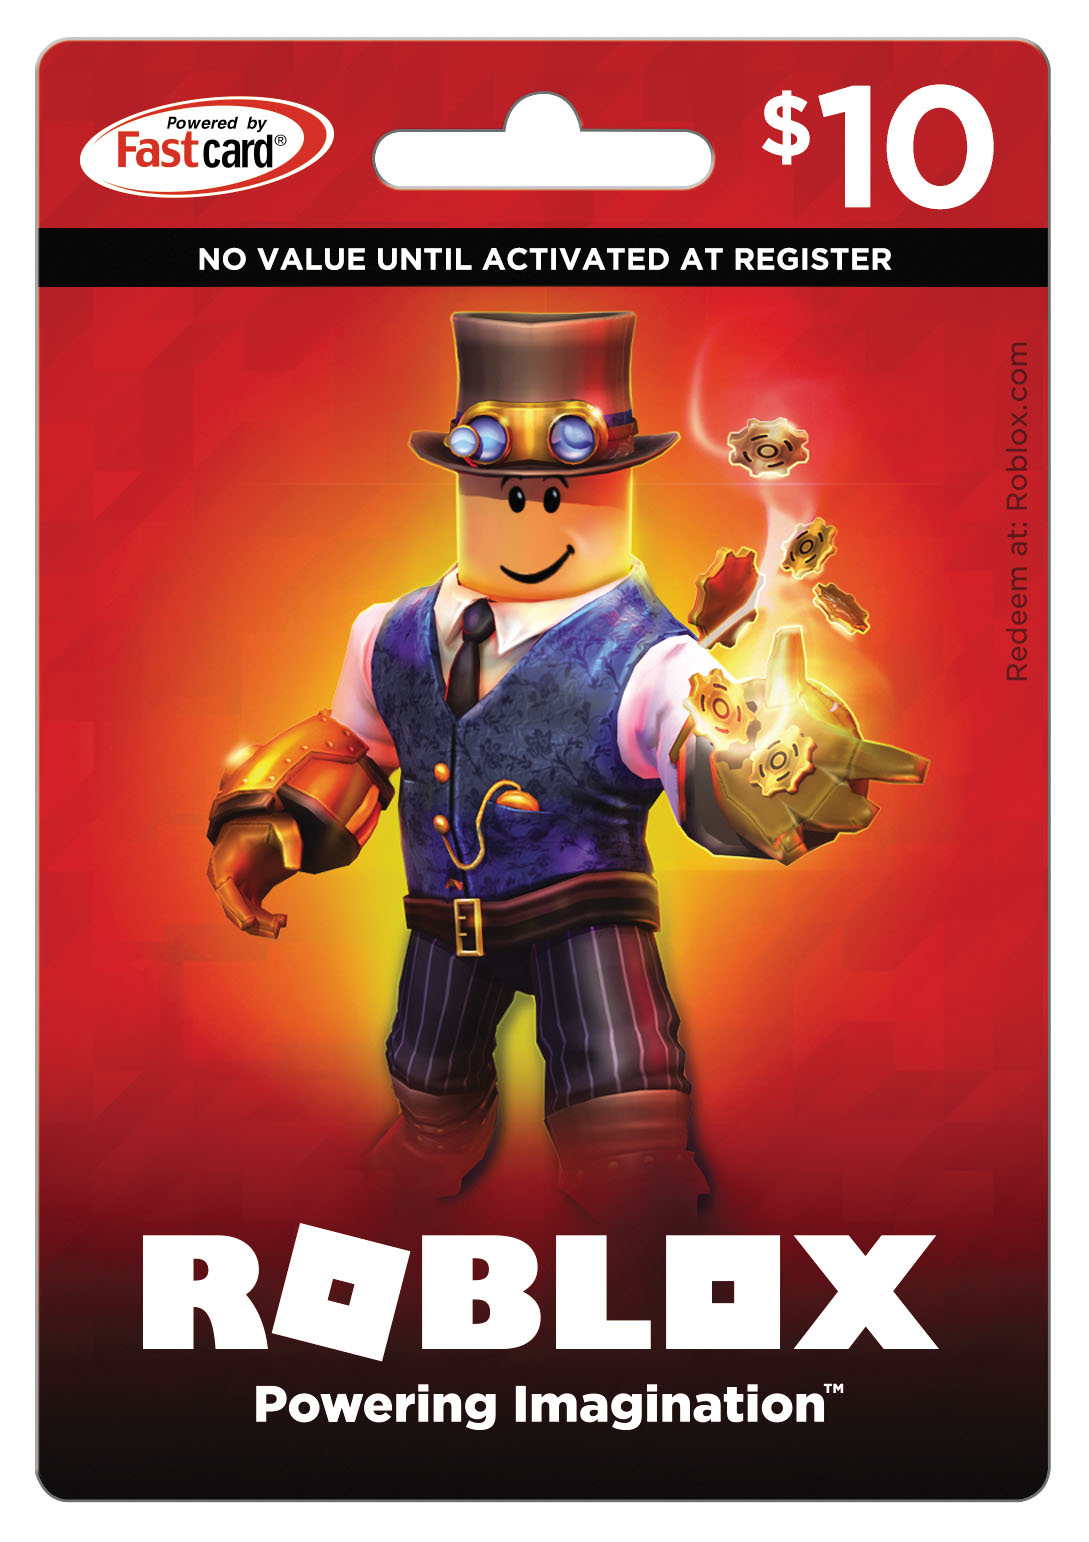 How To Look Cool In Roblox Without Robux On Ipad - Roblox 10 Gift Card Walmartcom